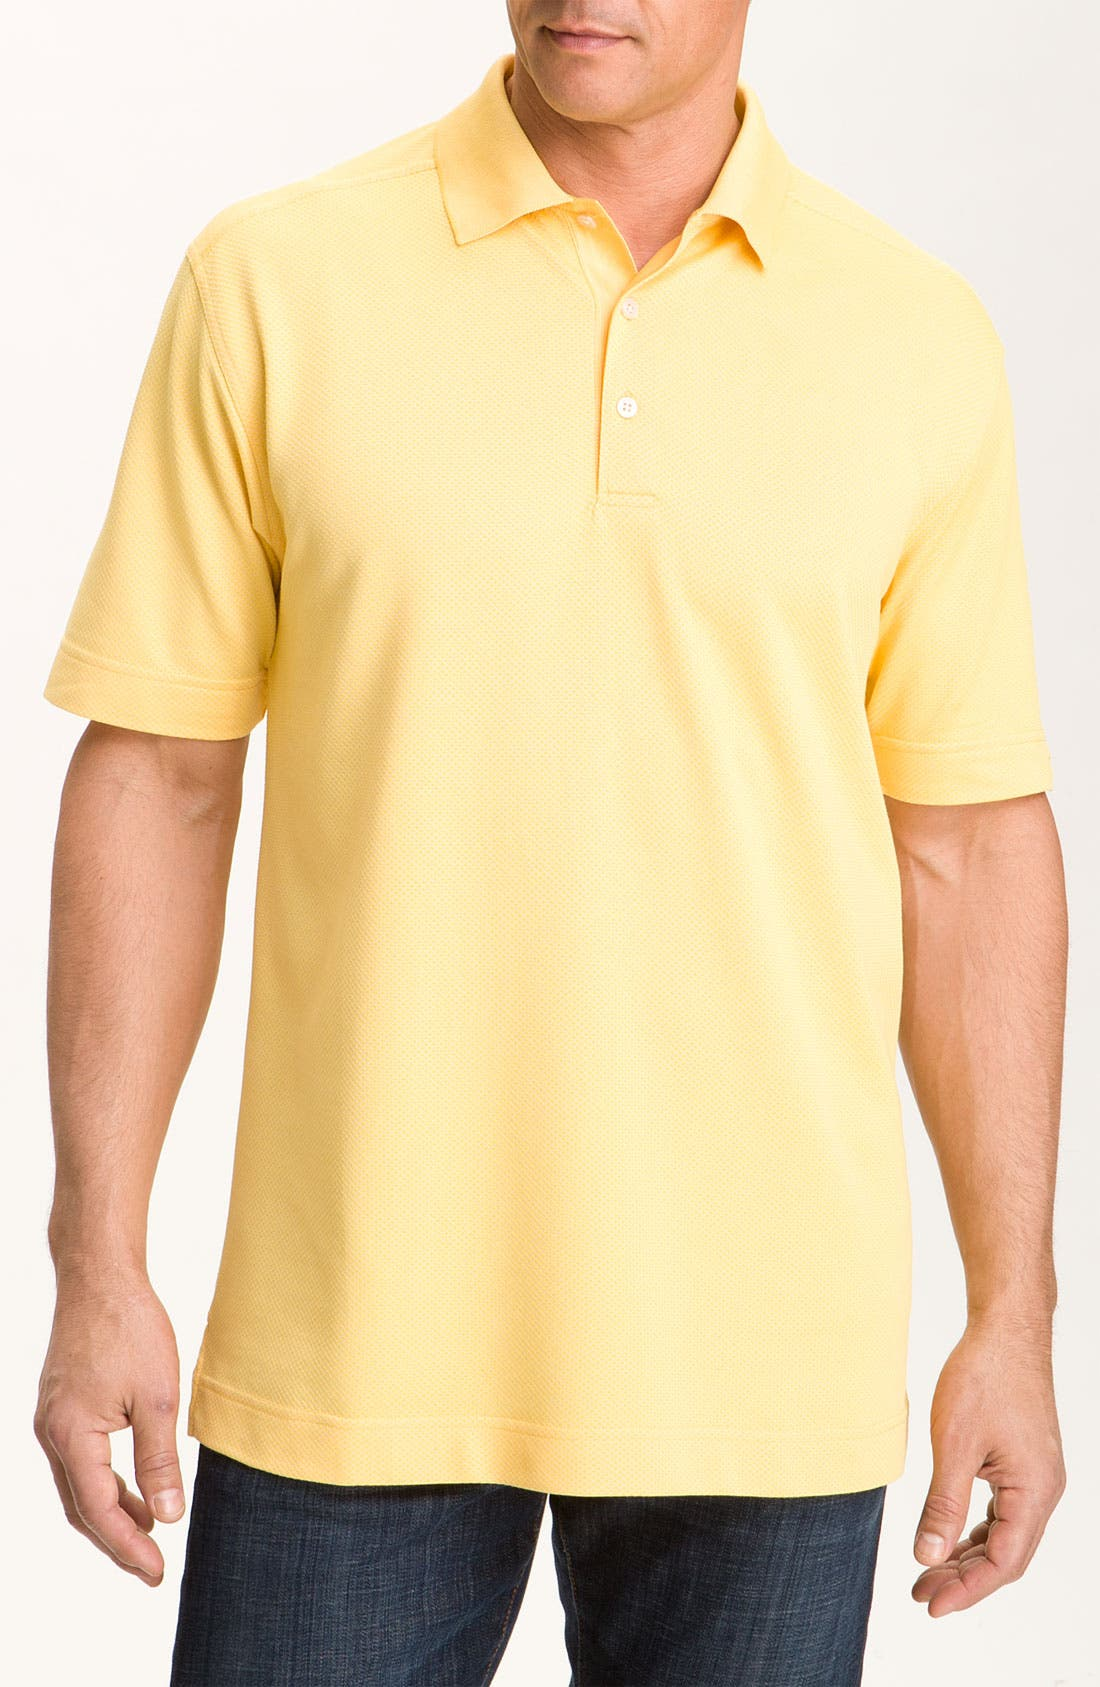 Main Image - Cutter & Buck 'Nano' DryTec Golf Polo (Big & Tall)